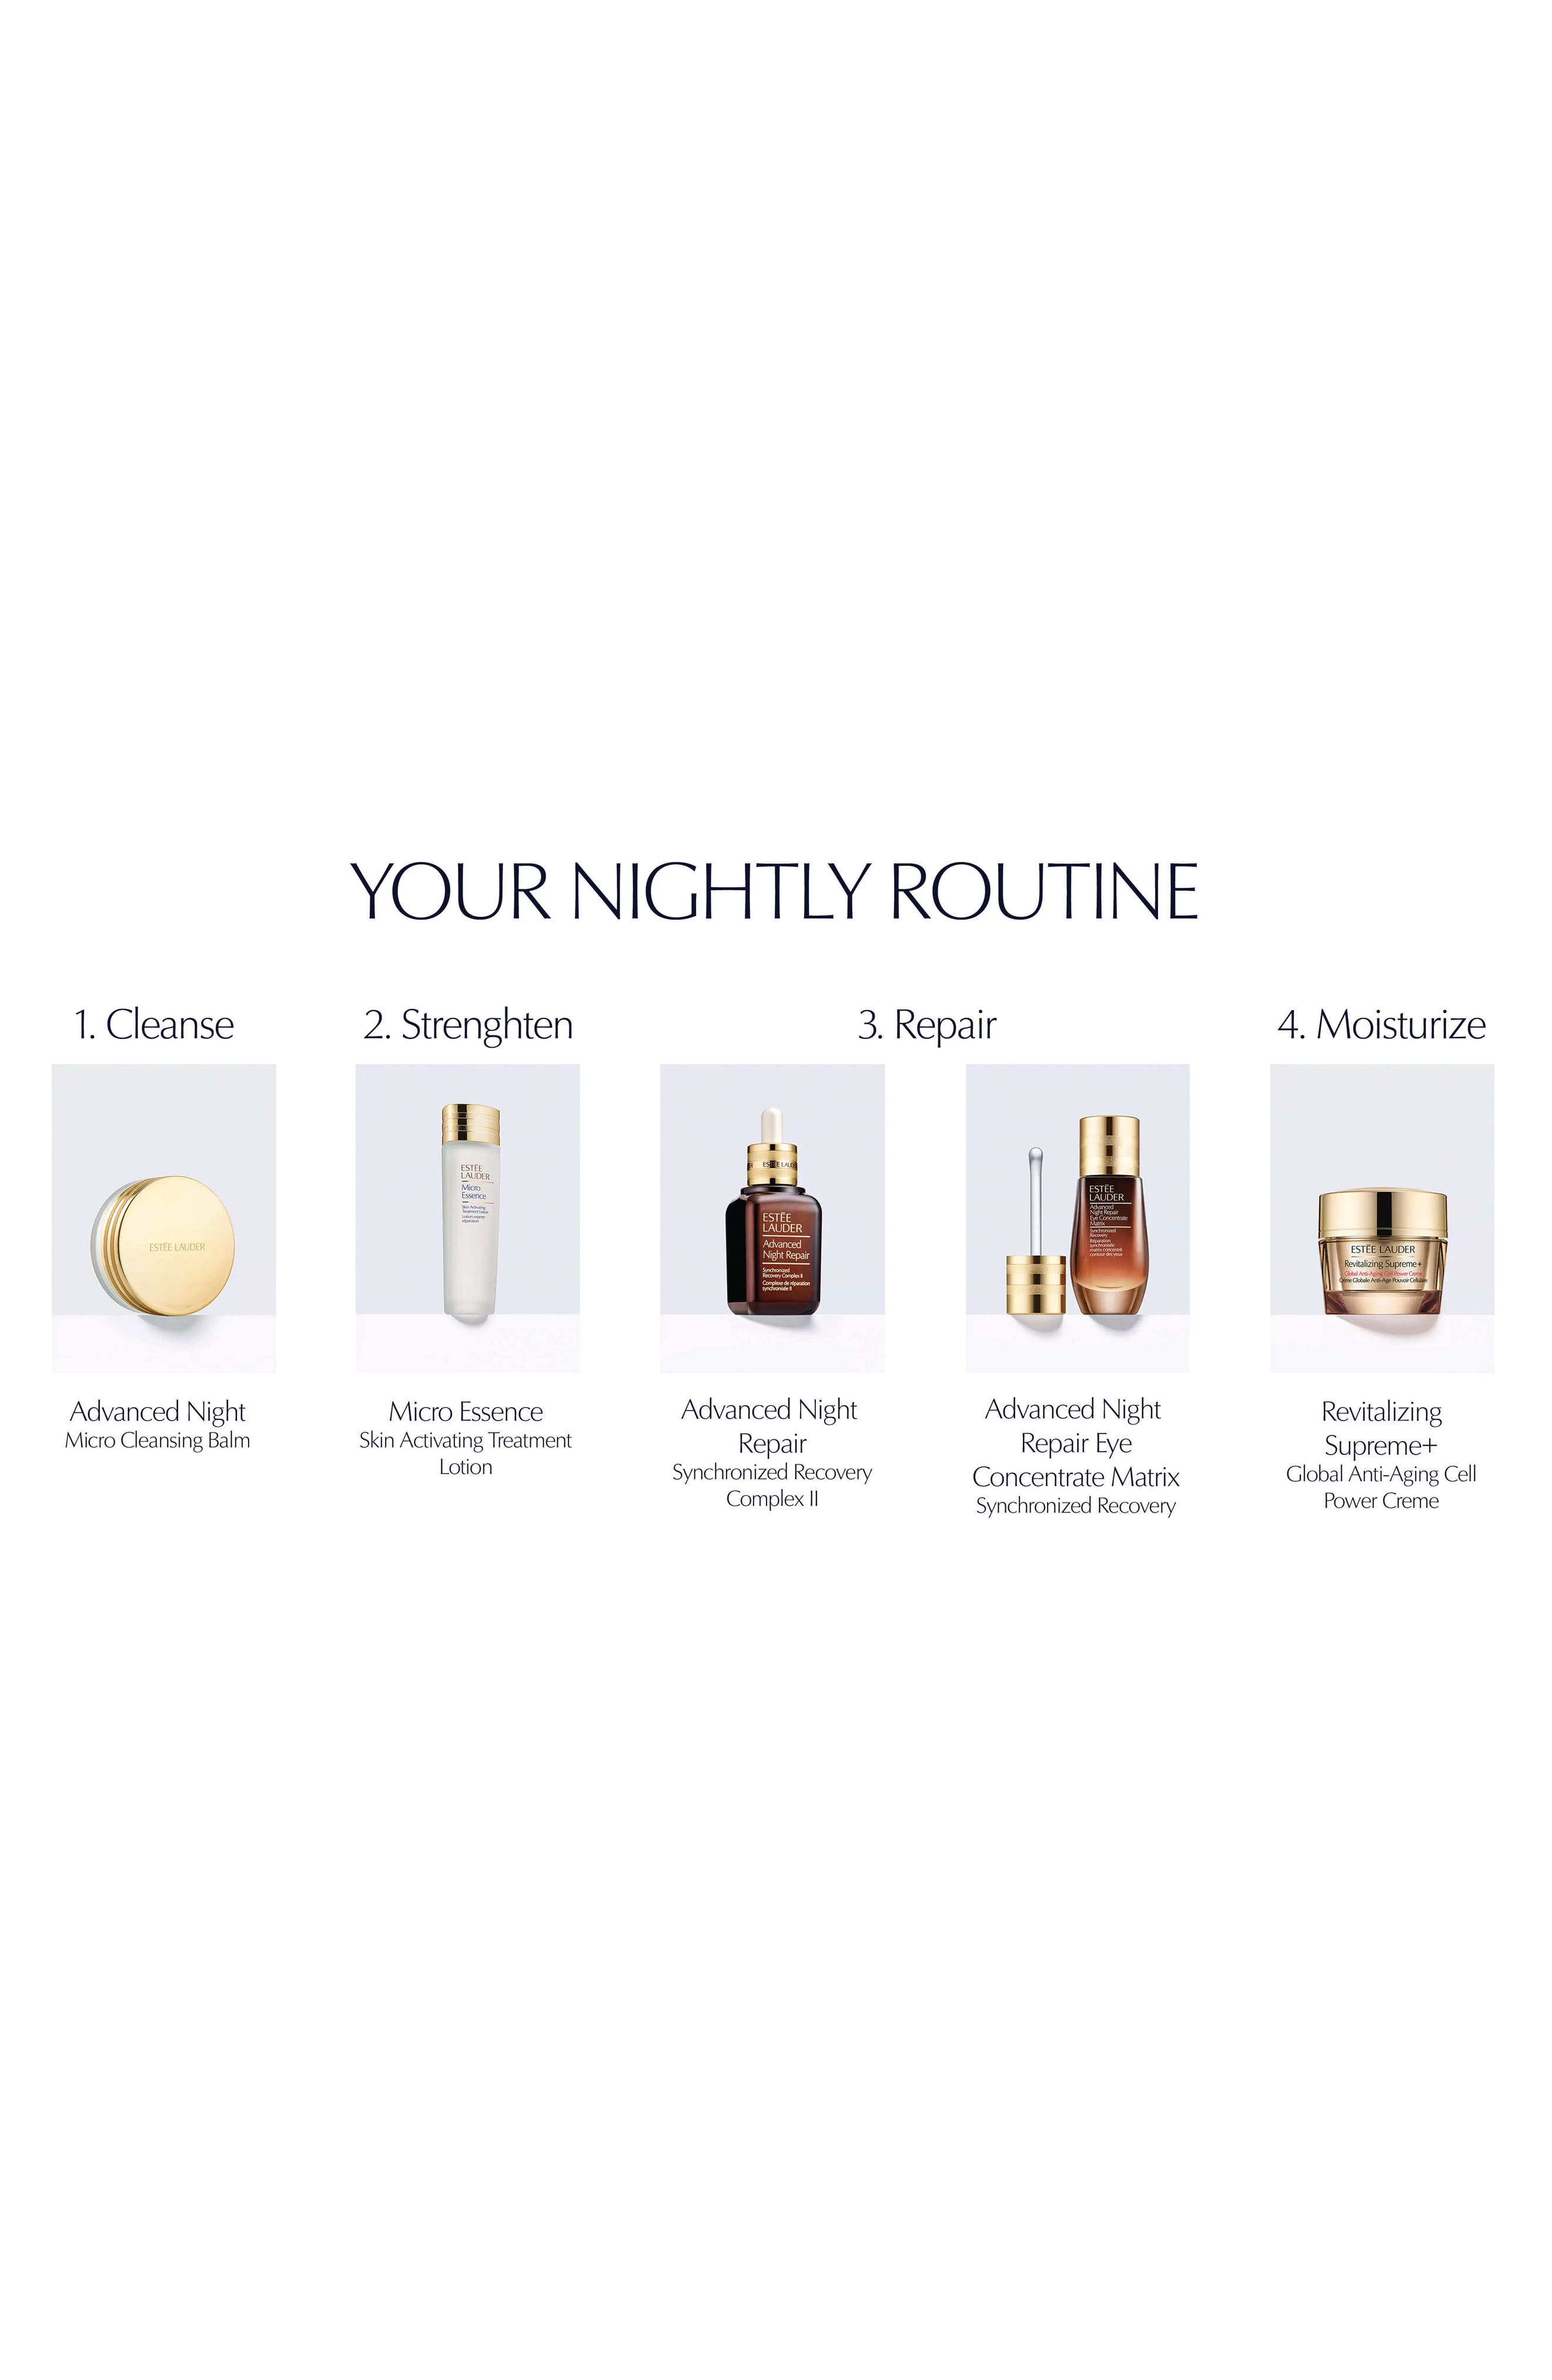 Revitalizing Supreme+ Global Anti-Aging Cell Power Creme,                             Alternate thumbnail 5, color,                             No Color